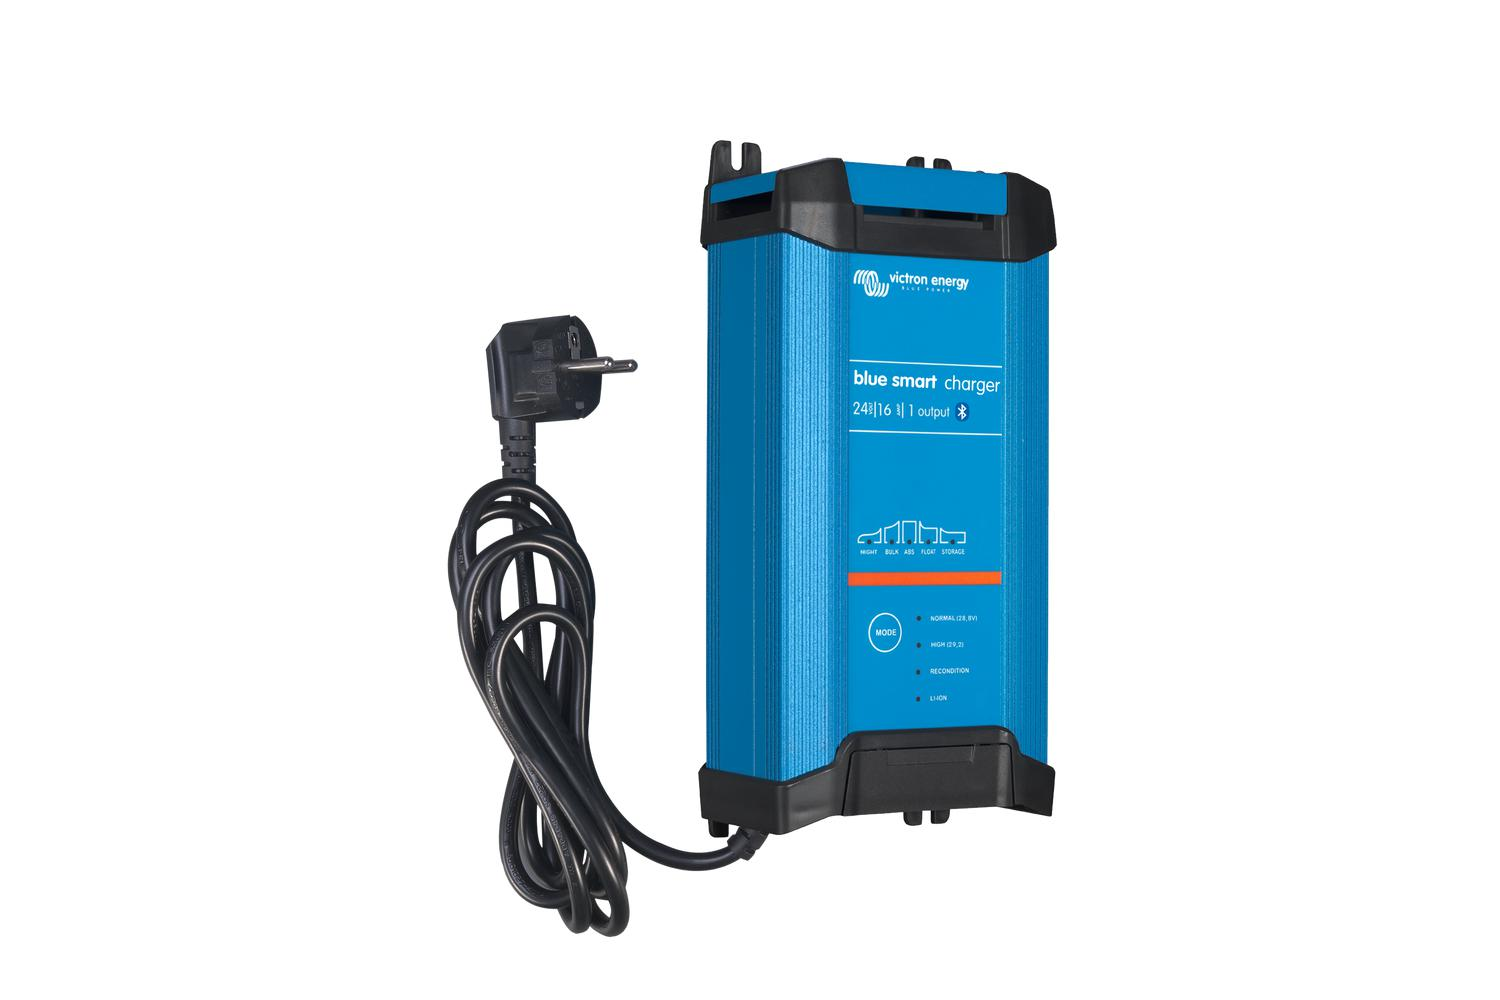 Victron Blue Smart Charger 24v/16a IP22 (3)